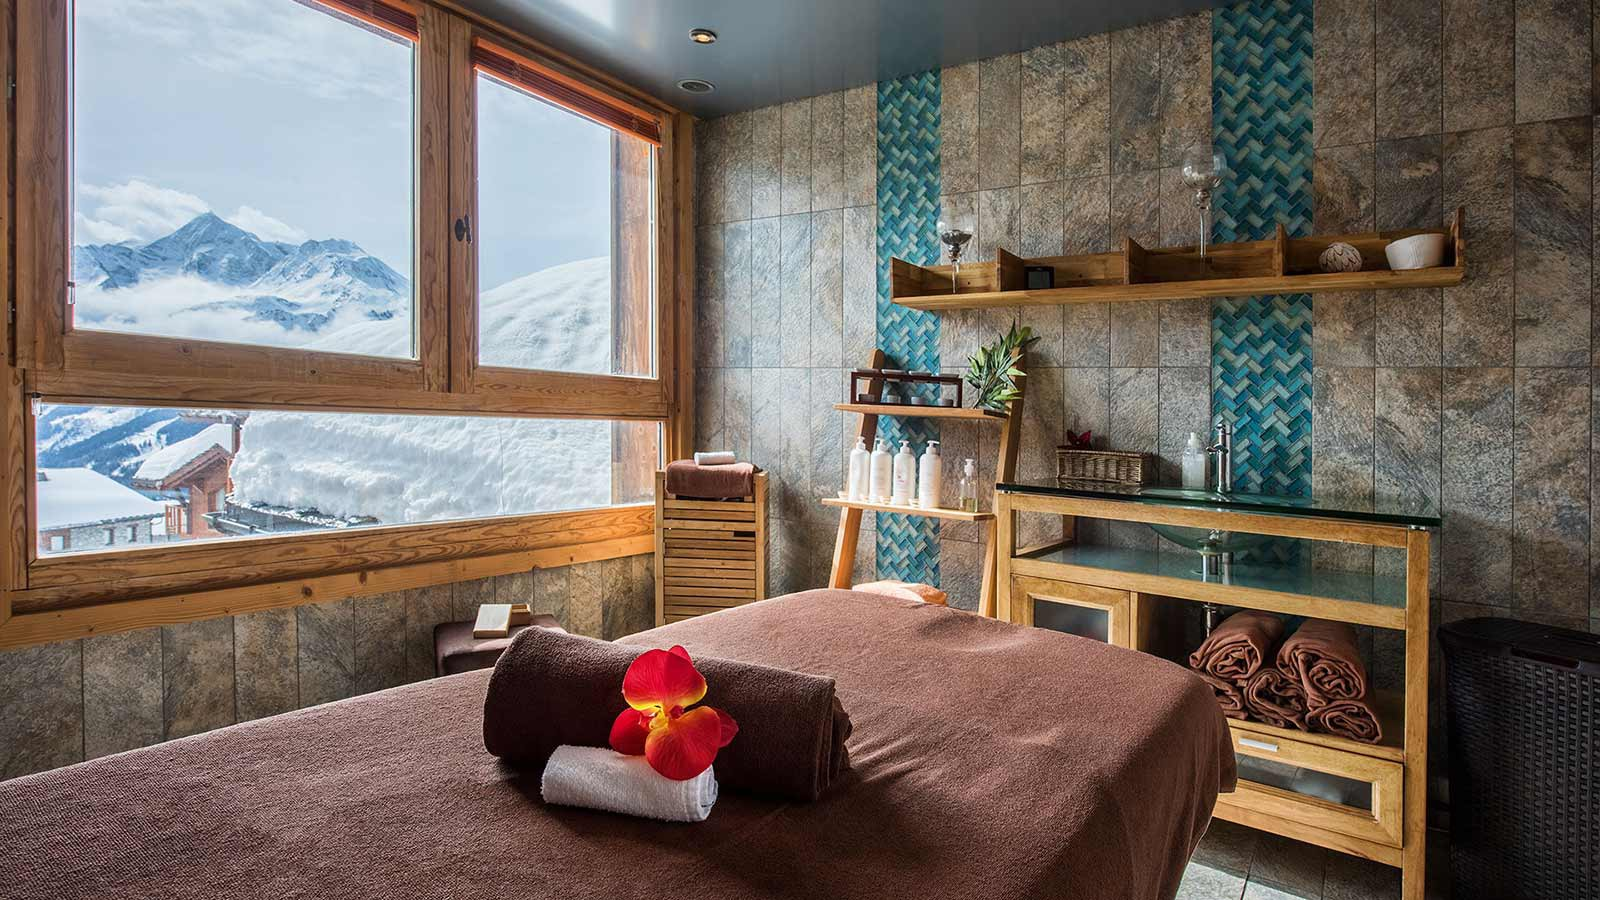 Wellness - Les Cimes Blanches, La Rosiere, France